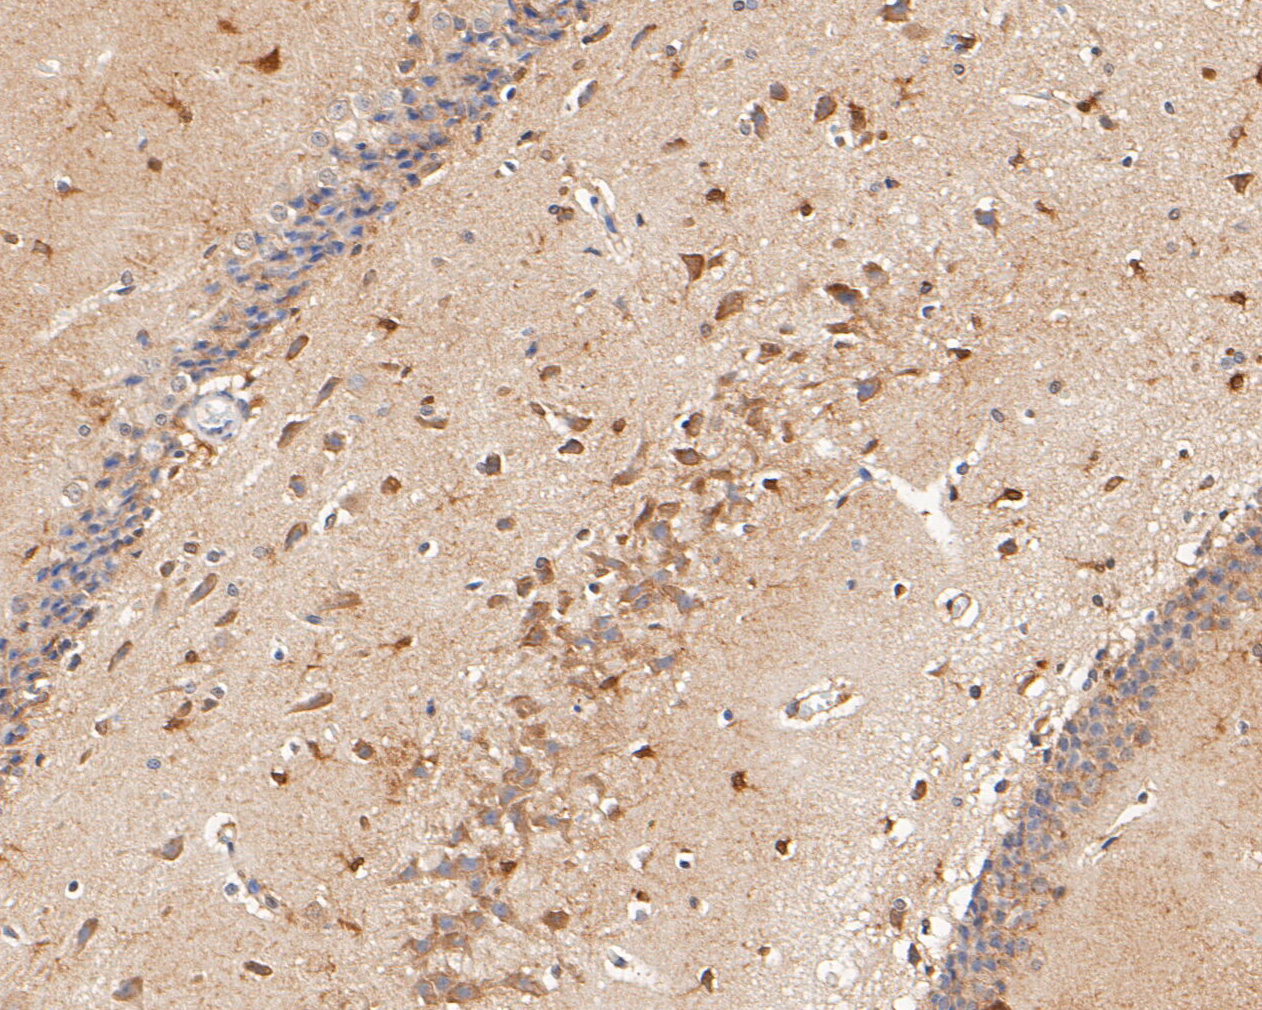 Immunohistochemical analysis of paraffin-embedded rat brain tissue using anti-P2X2 antibody. The section was pre-treated using heat mediated antigen retrieval with Tris-EDTA buffer (pH 8.0-8.4) for 20 minutes.The tissues were blocked in 5% BSA for 30 minutes at room temperature, washed with ddH2O and PBS, and then probed with the primary antibody (ER1902-59, 1/50) for 30 minutes at room temperature. The detection was performed using an HRP conjugated compact polymer system. DAB was used as the chromogen. Tissues were counterstained with hematoxylin and mounted with DPX.